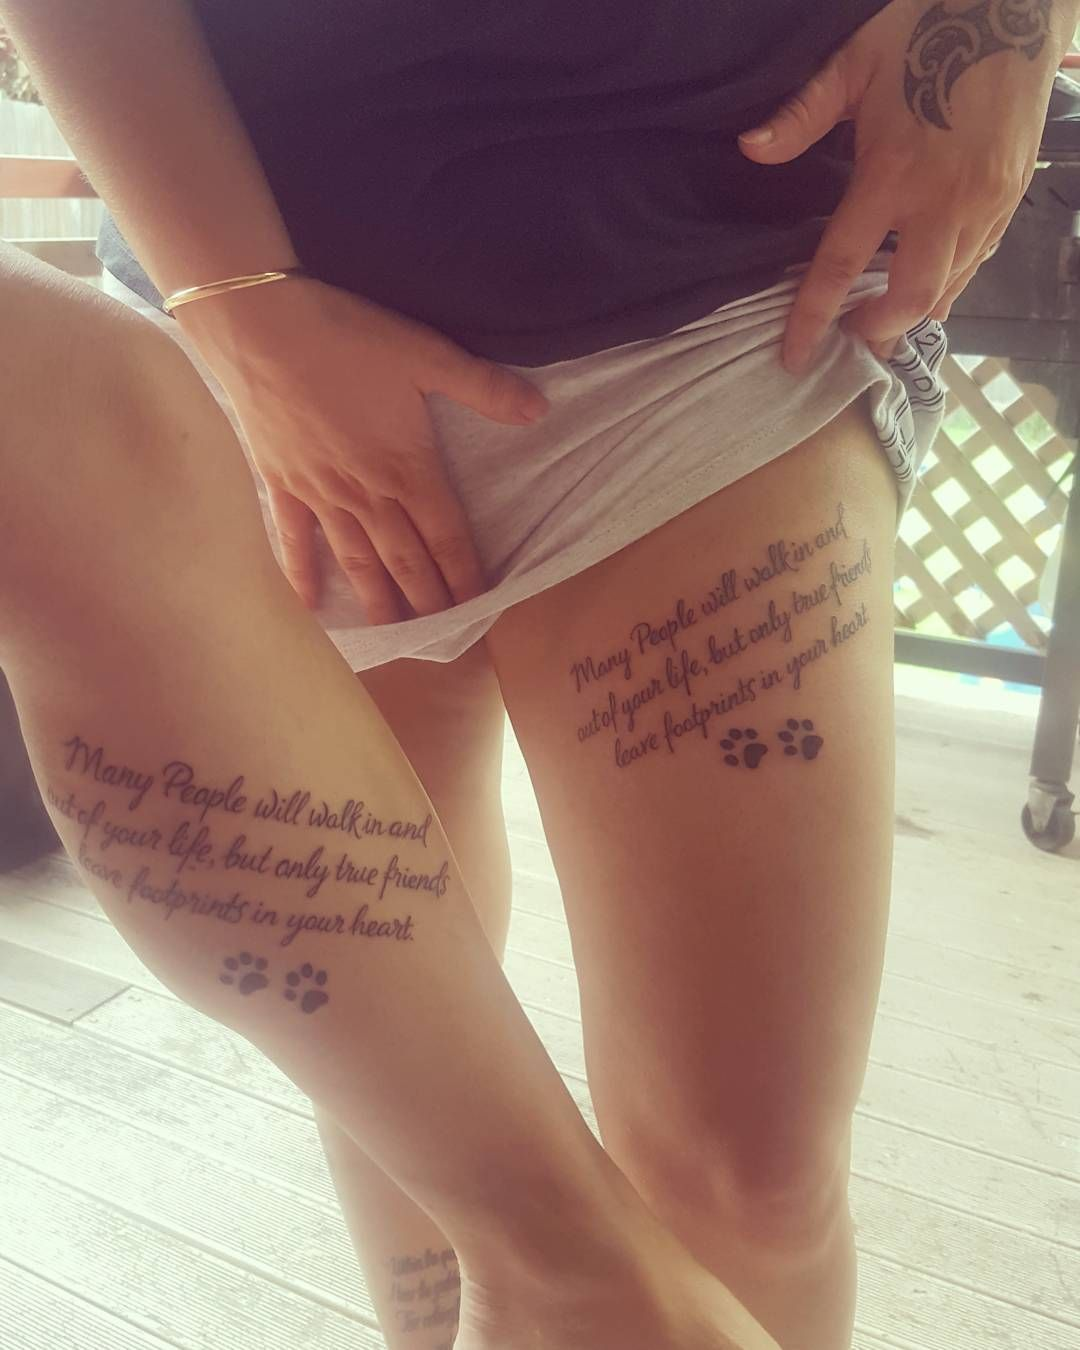 Friendship Quote Thigh Tattoos Best Friend Tattoos Friend